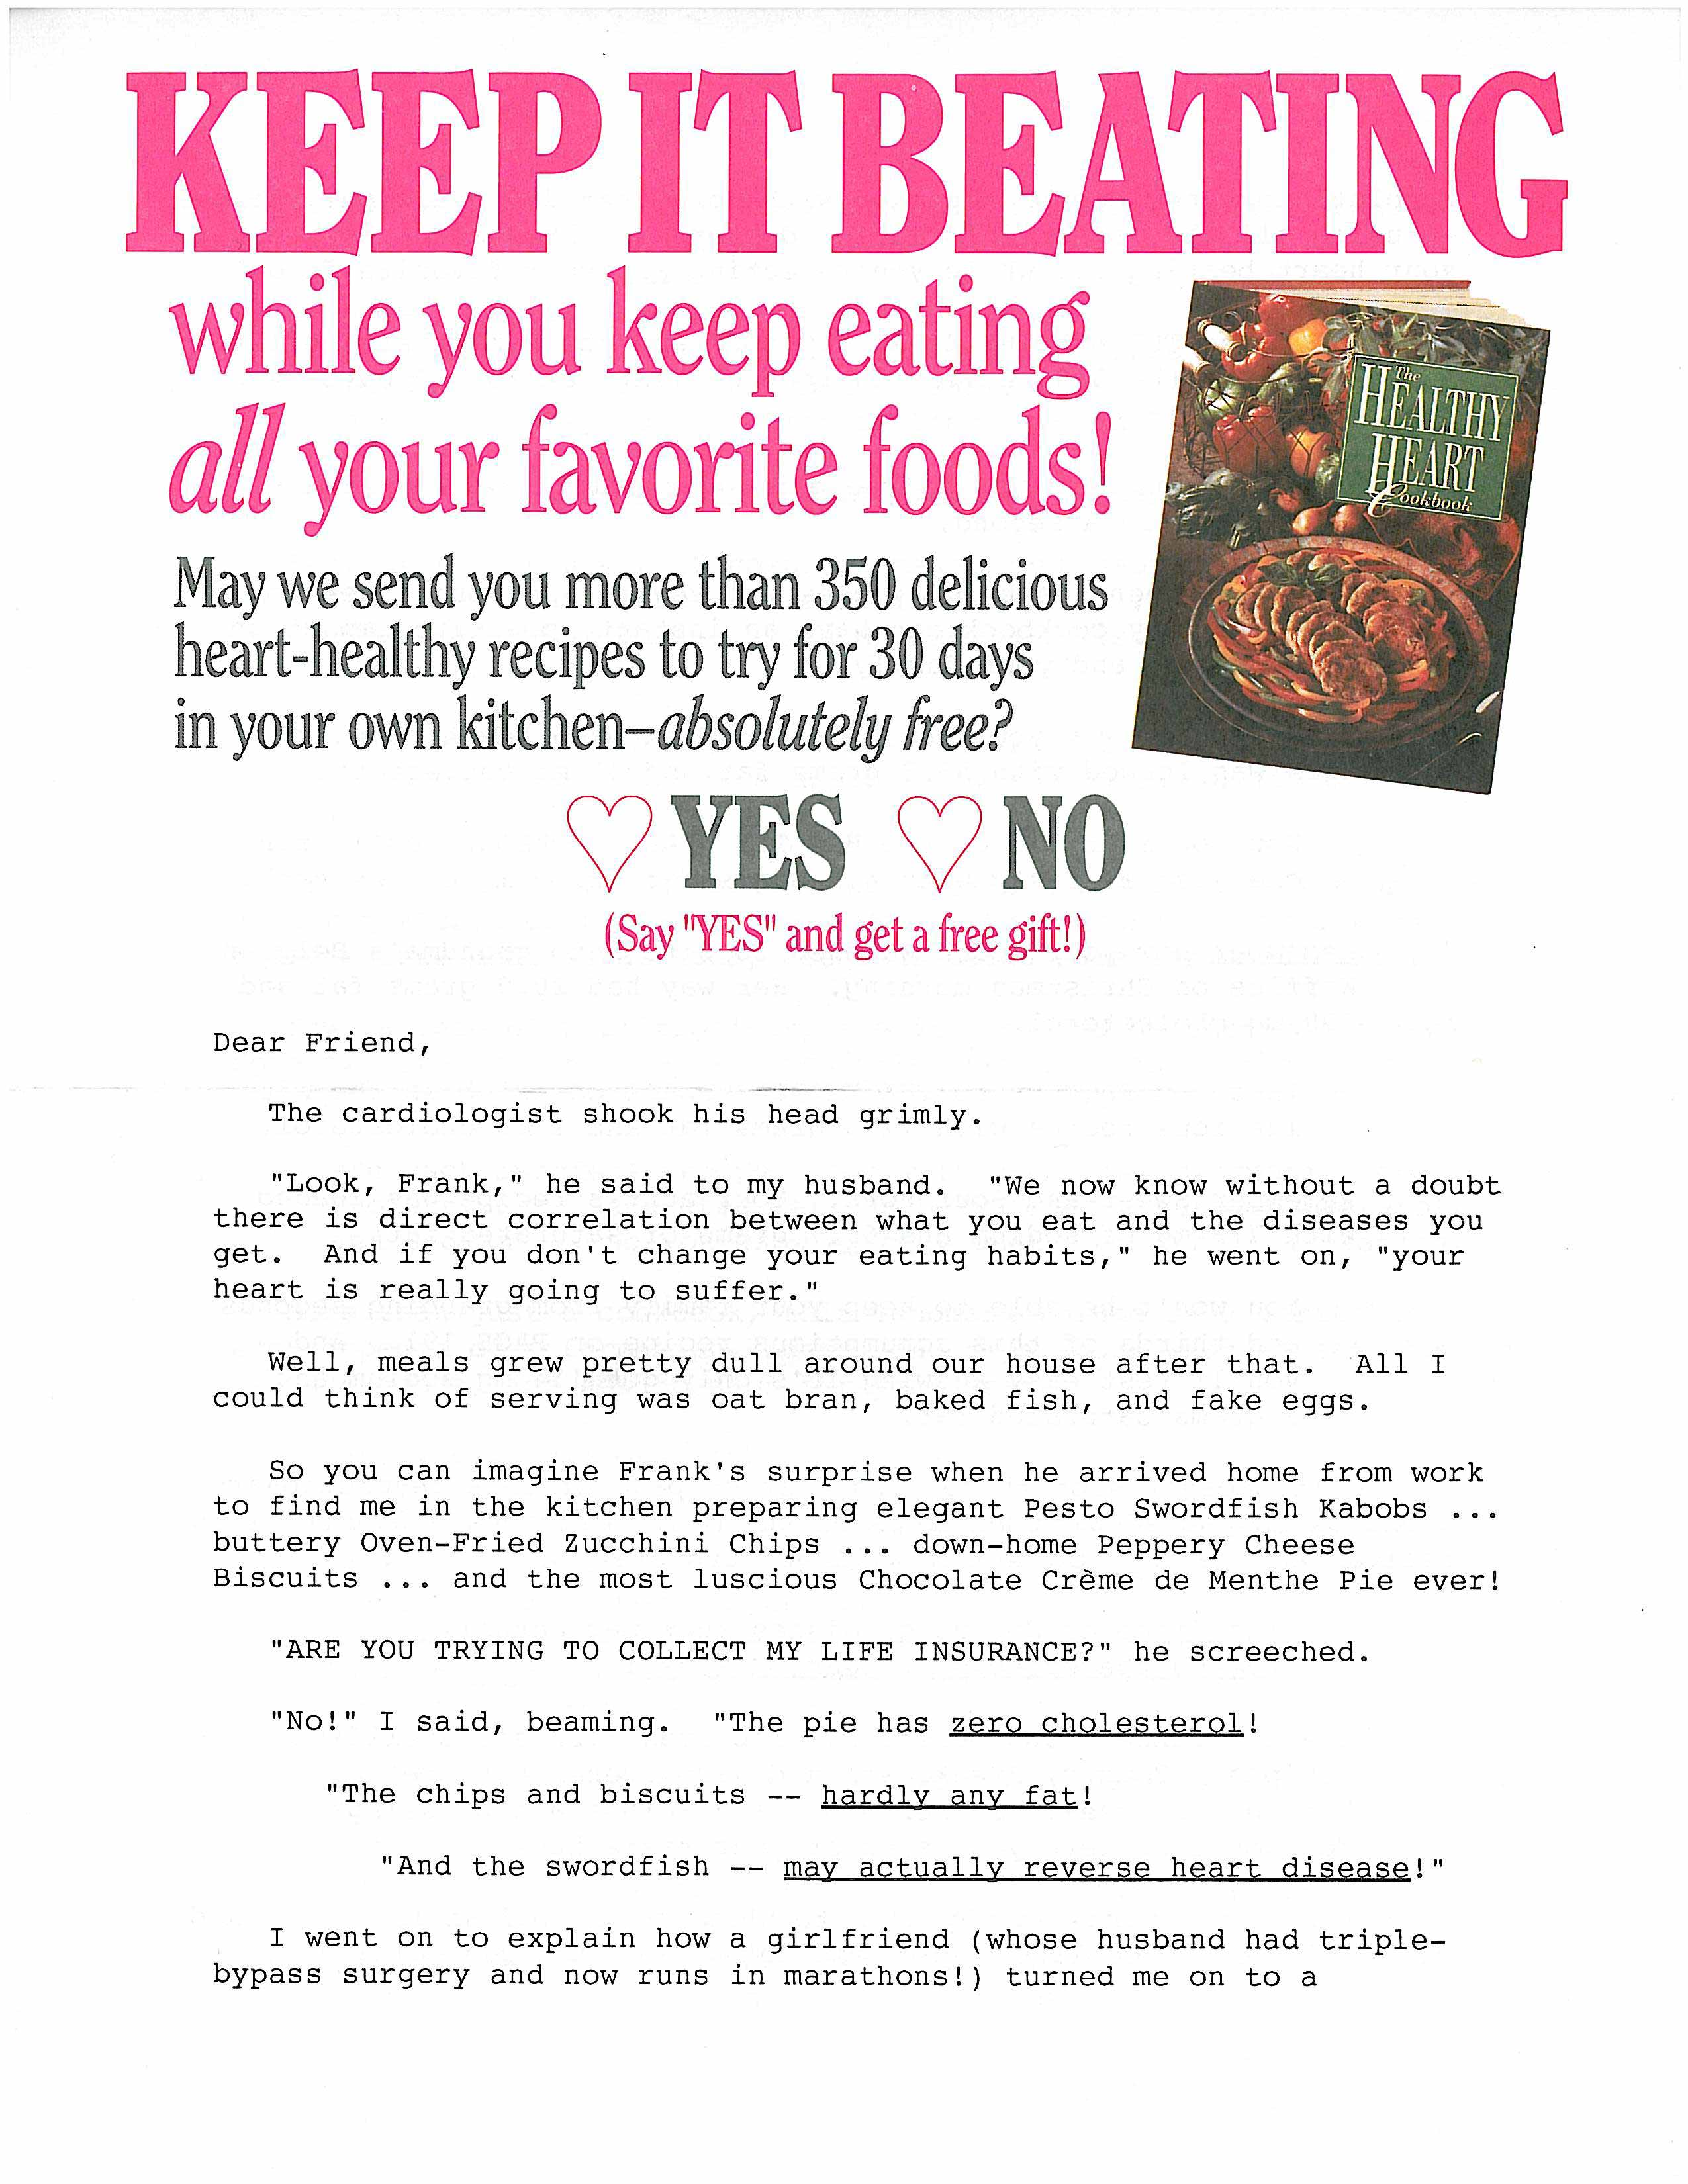 image of Healthy Heart Cookbook direct mail sales letter page 1